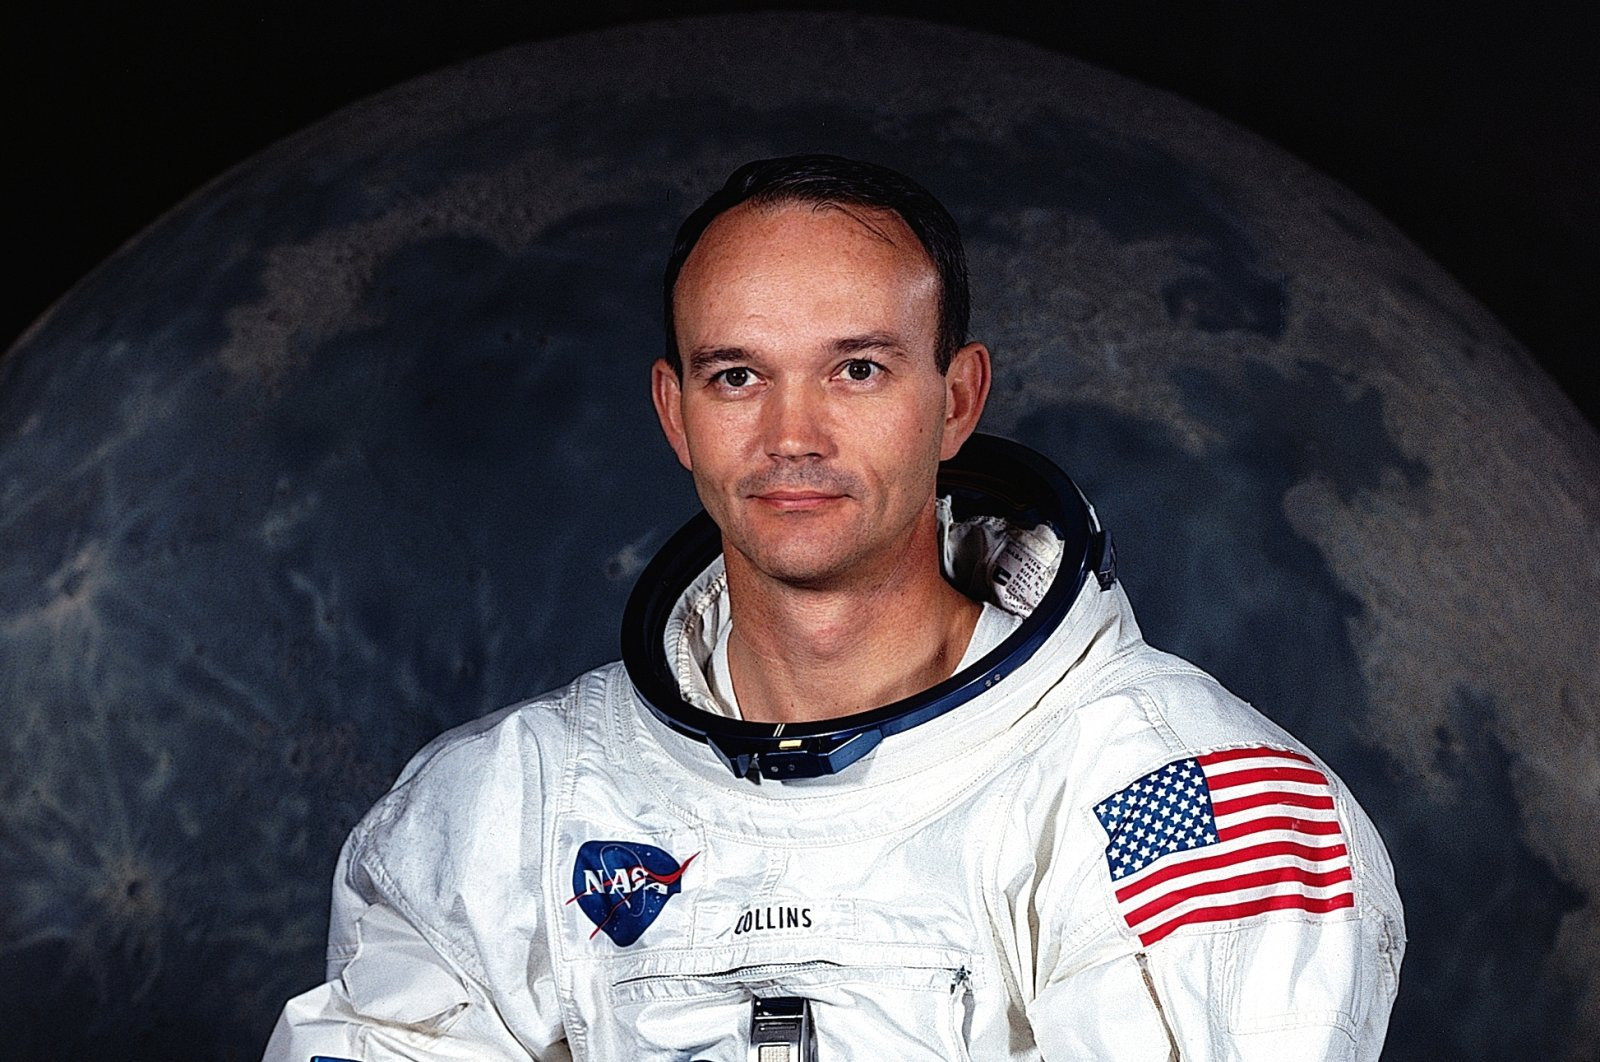 Apollo 11 astronaut Michael Collins poses for his official portrait in this July 1969 handout photo courtesy of NASA. (NASA - Handout via Reuters)